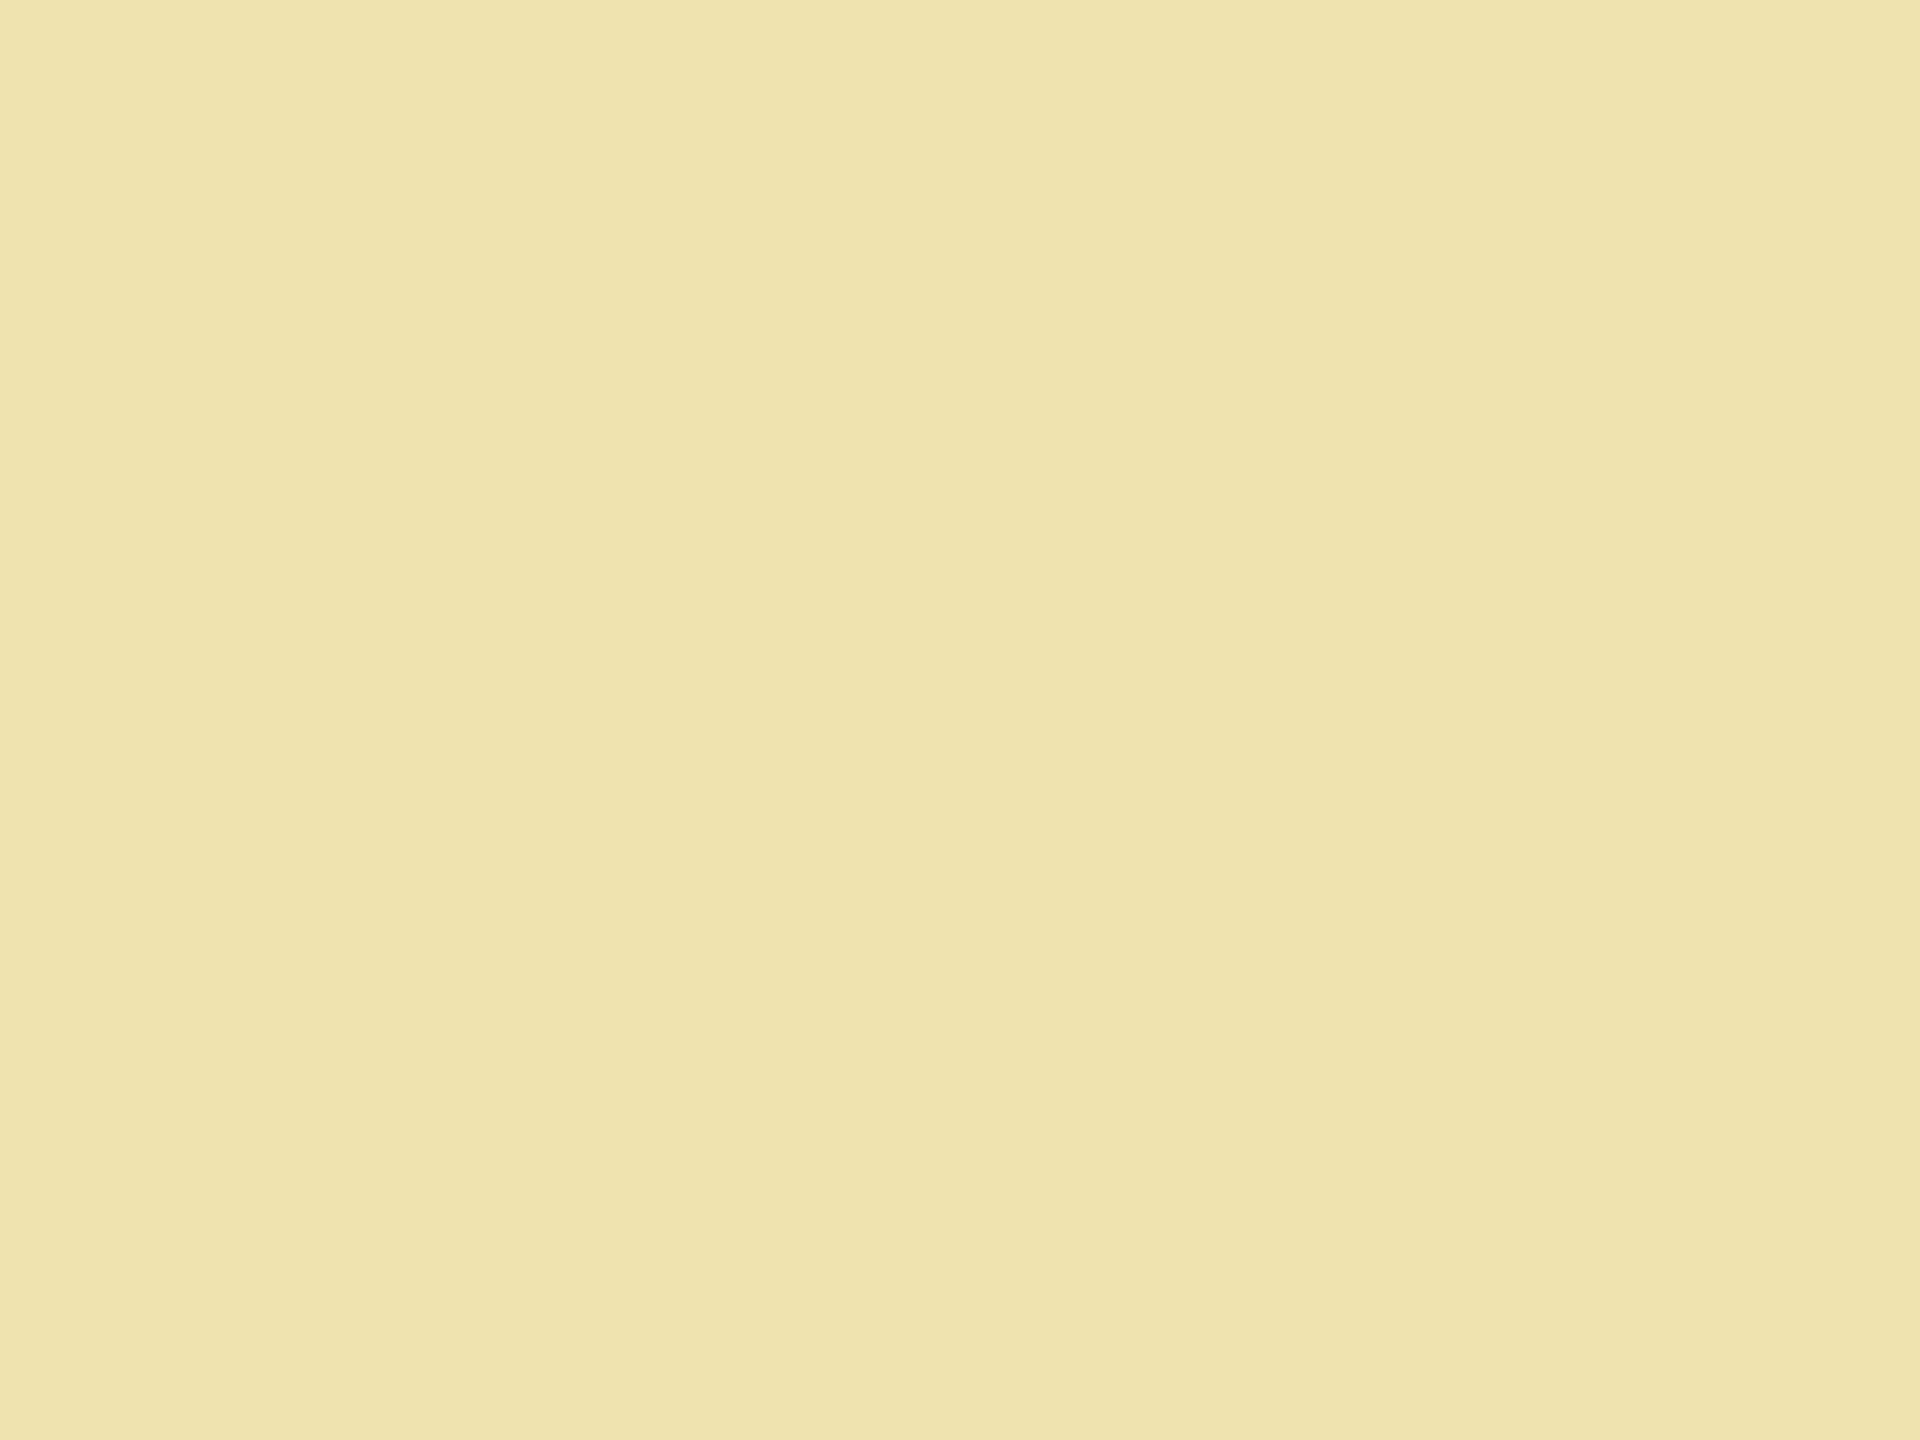 Light Yellow Background Free Stock Photo - Public Domain Pictures